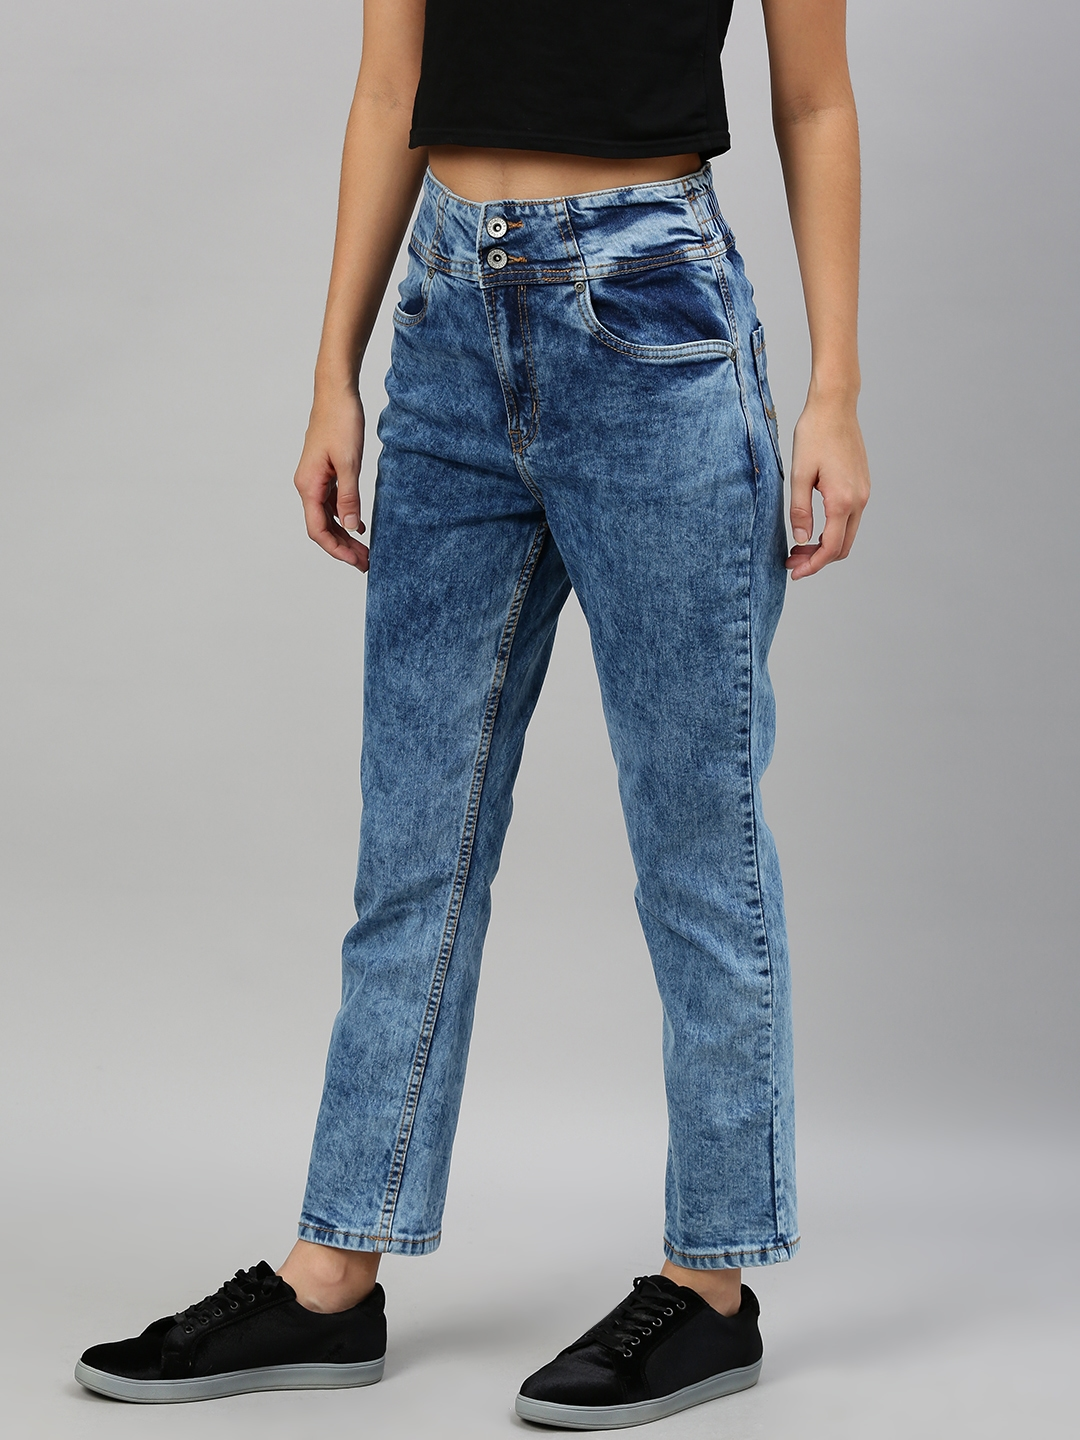 Roadster Woman Blue Solid Mid Rise Light Fade Stretchable Clean Look Jeans